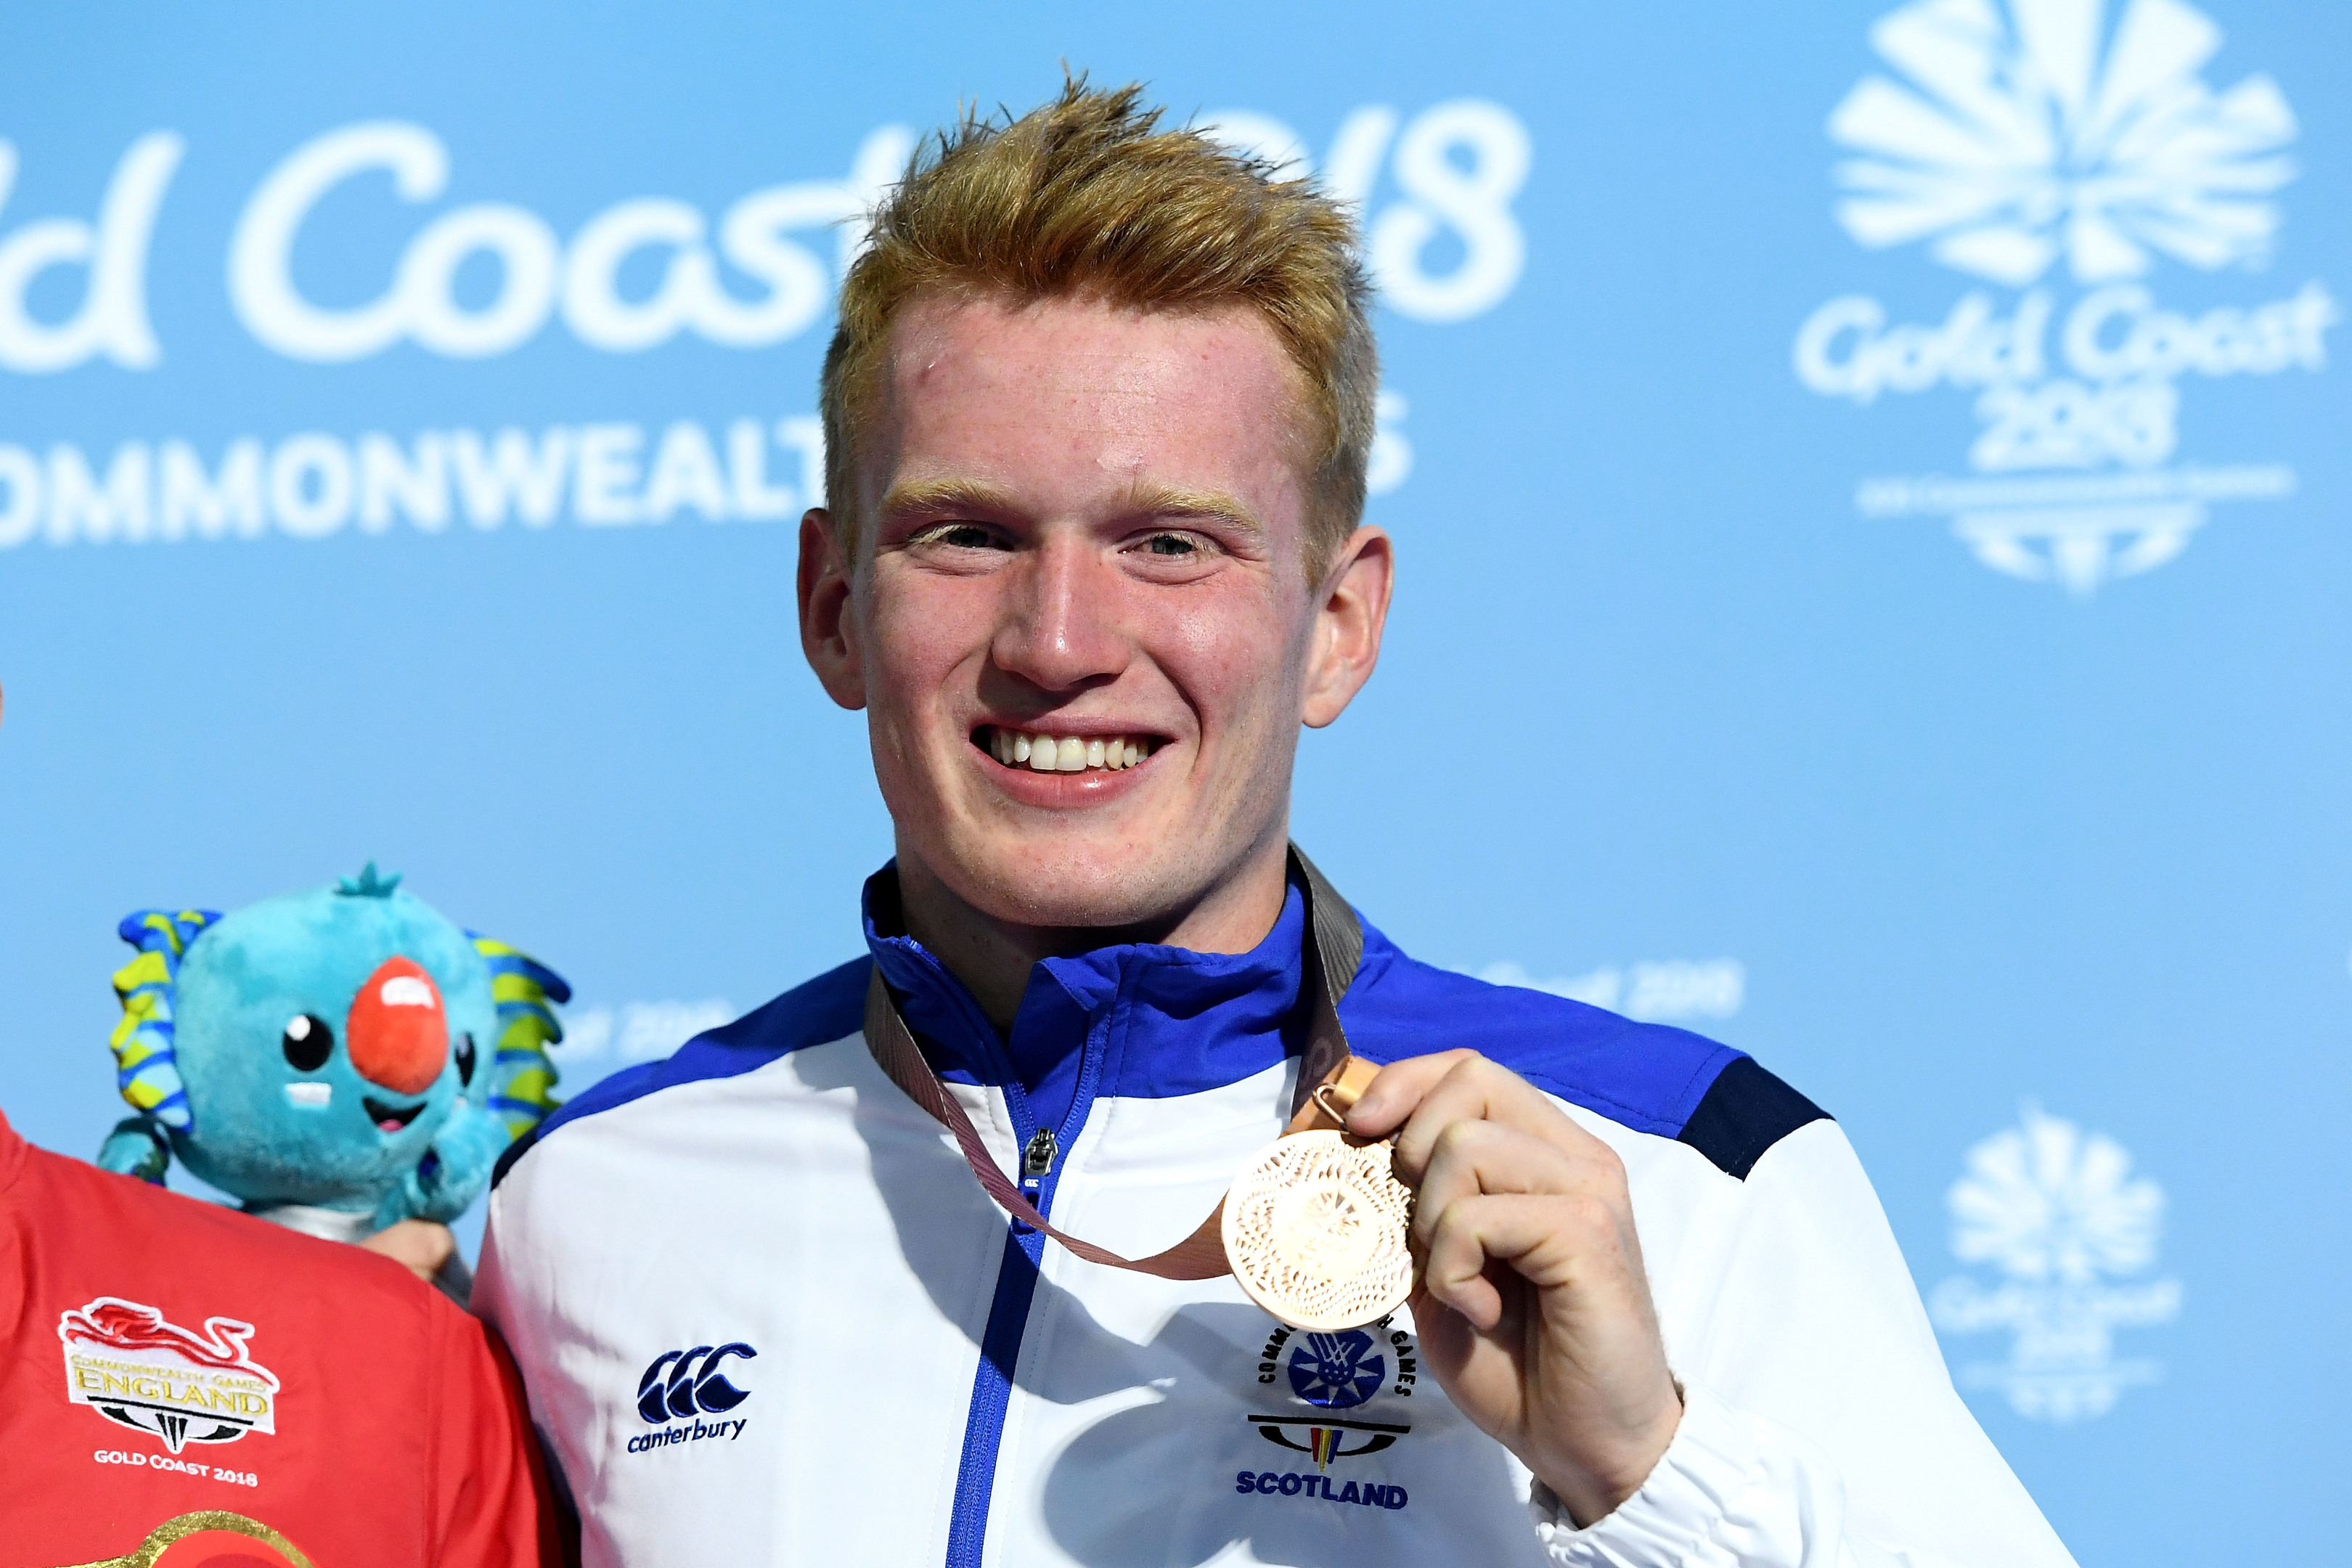 Bronze medalist James Heatly of Scotland poses during the medal ceremony for the Men's 1m Springboard Diving Final